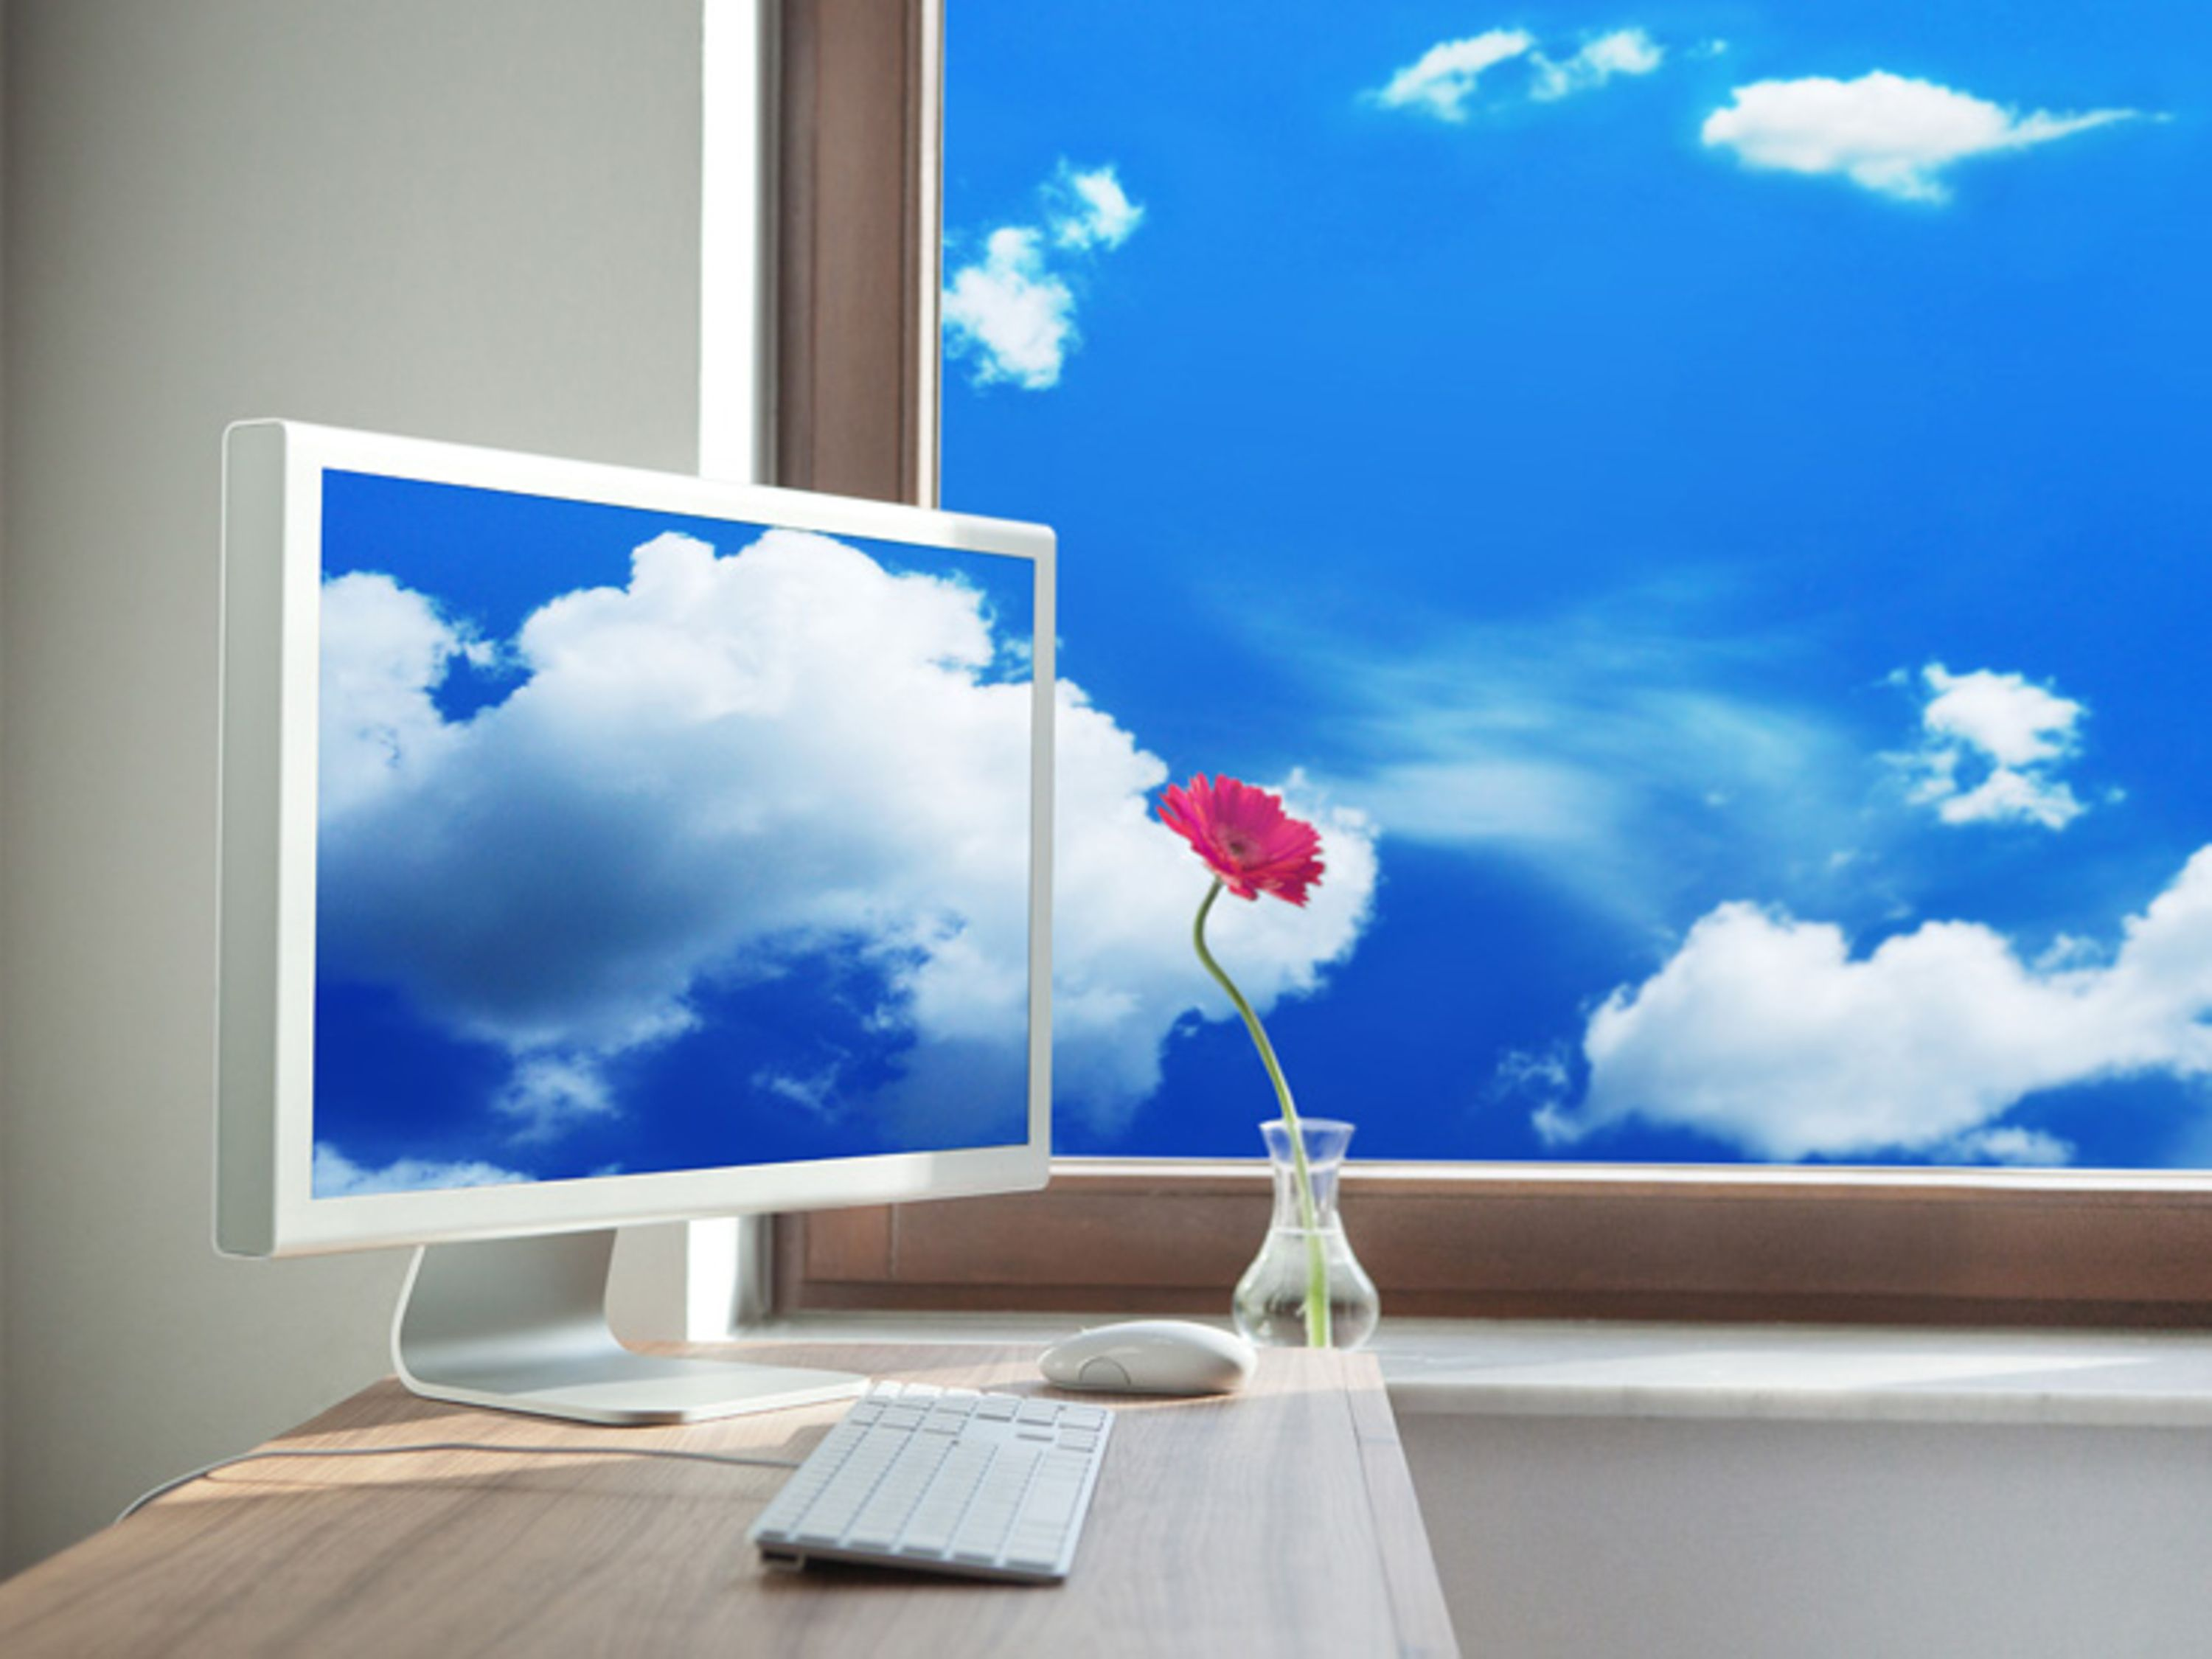 Clouds appear through a window and on a desktop